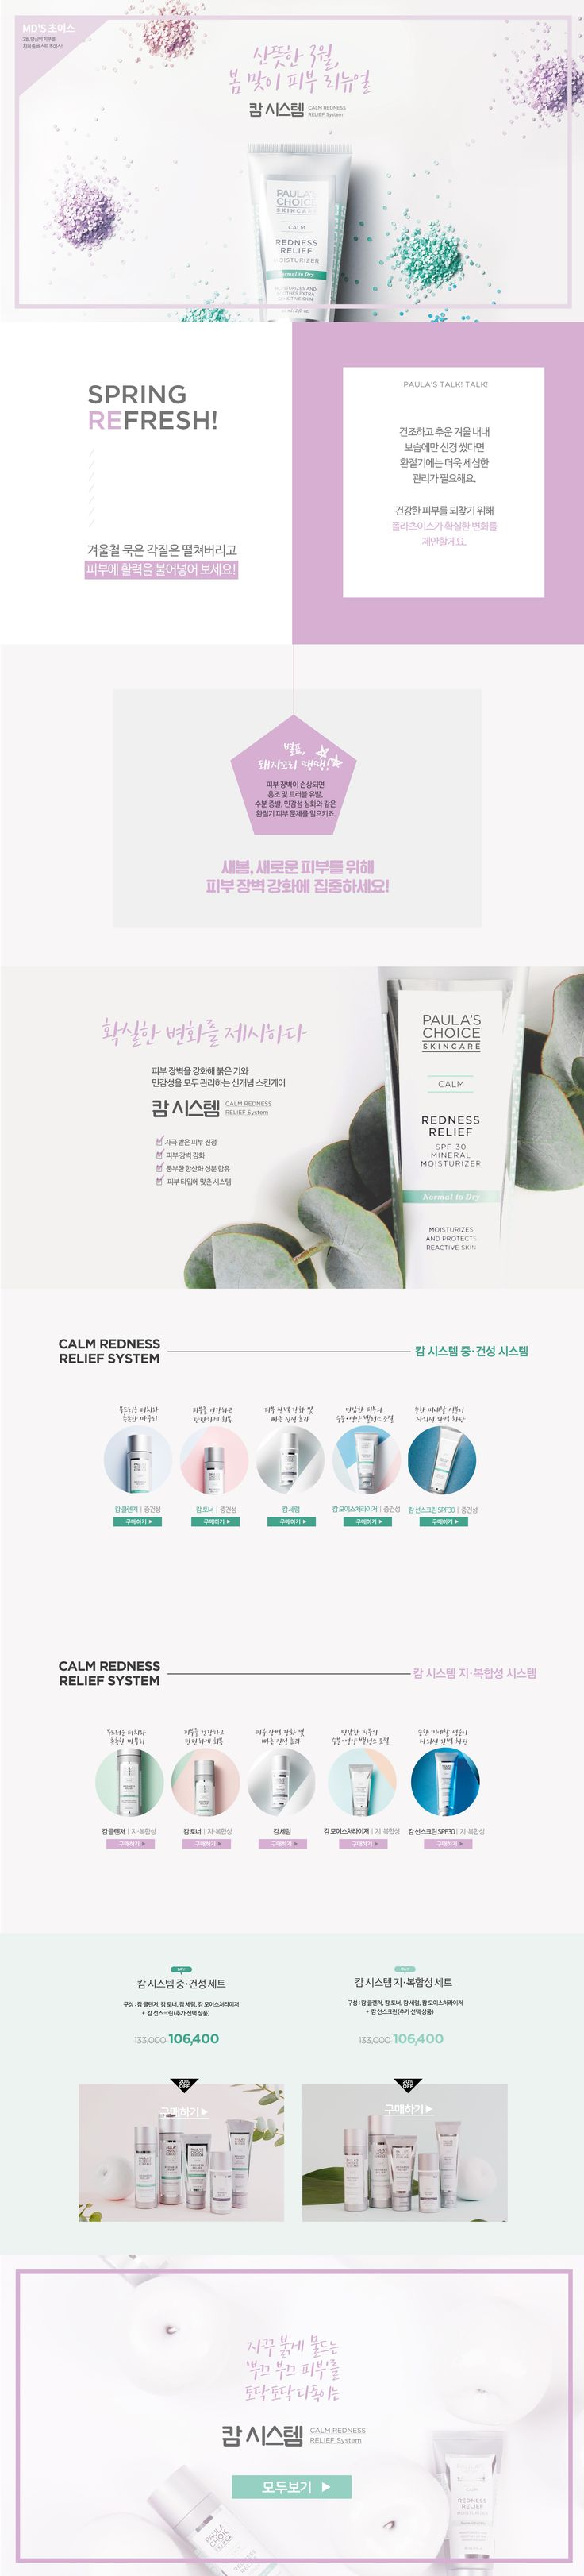 paulaschoice 폴라초이스 이벤트페이지 웹디자인 화장품 이벤트 event / design / calm / cosmetic / pink / mint / webdesign by chloeseul